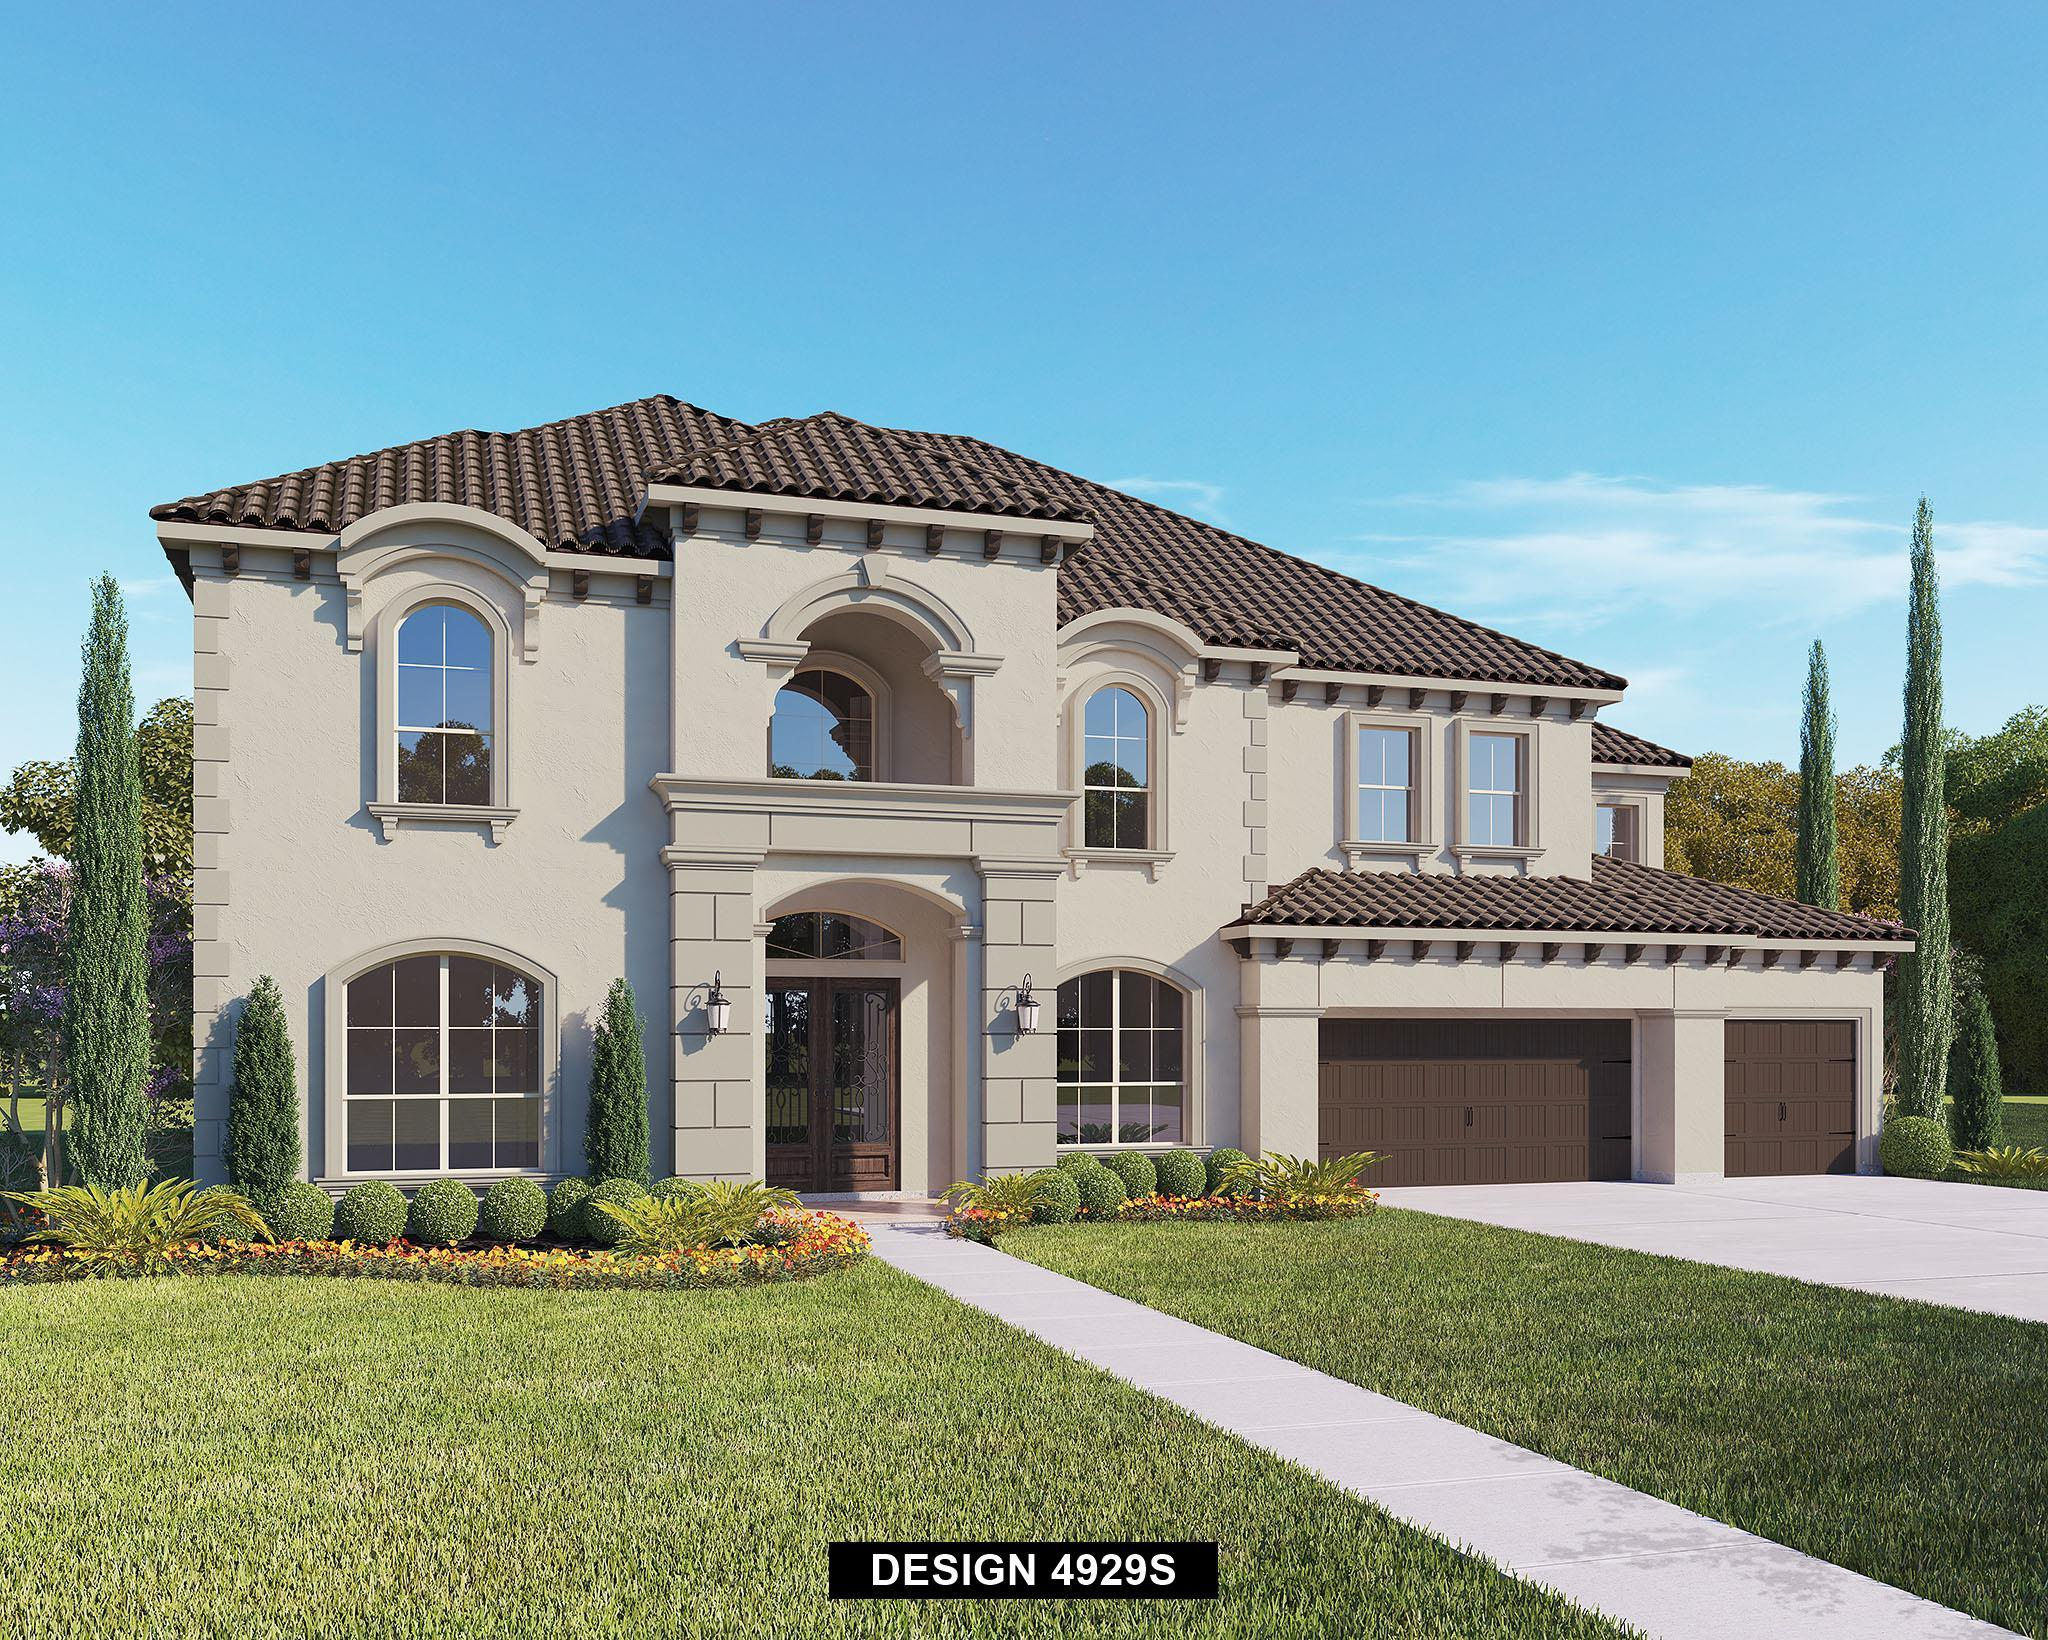 Single Family for Sale at Havenwood At Hunters Crossing - 4929s 2509 Otter Way New Braunfels, Texas 78132 United States